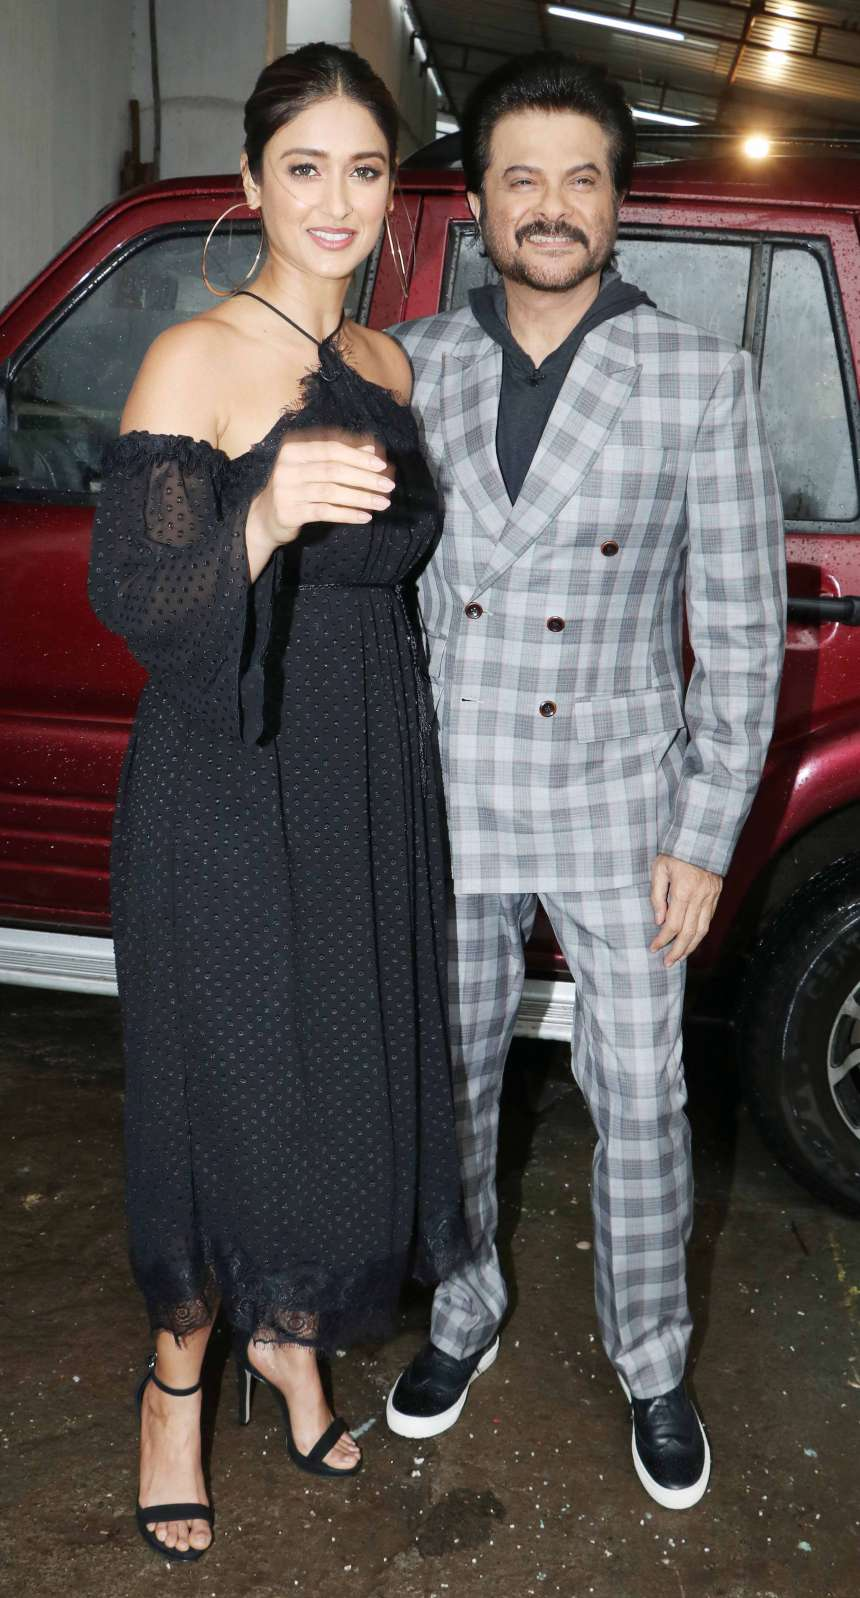 Anil Kapoor being a gentleman escorted Ilena D'cruz as we can see that.